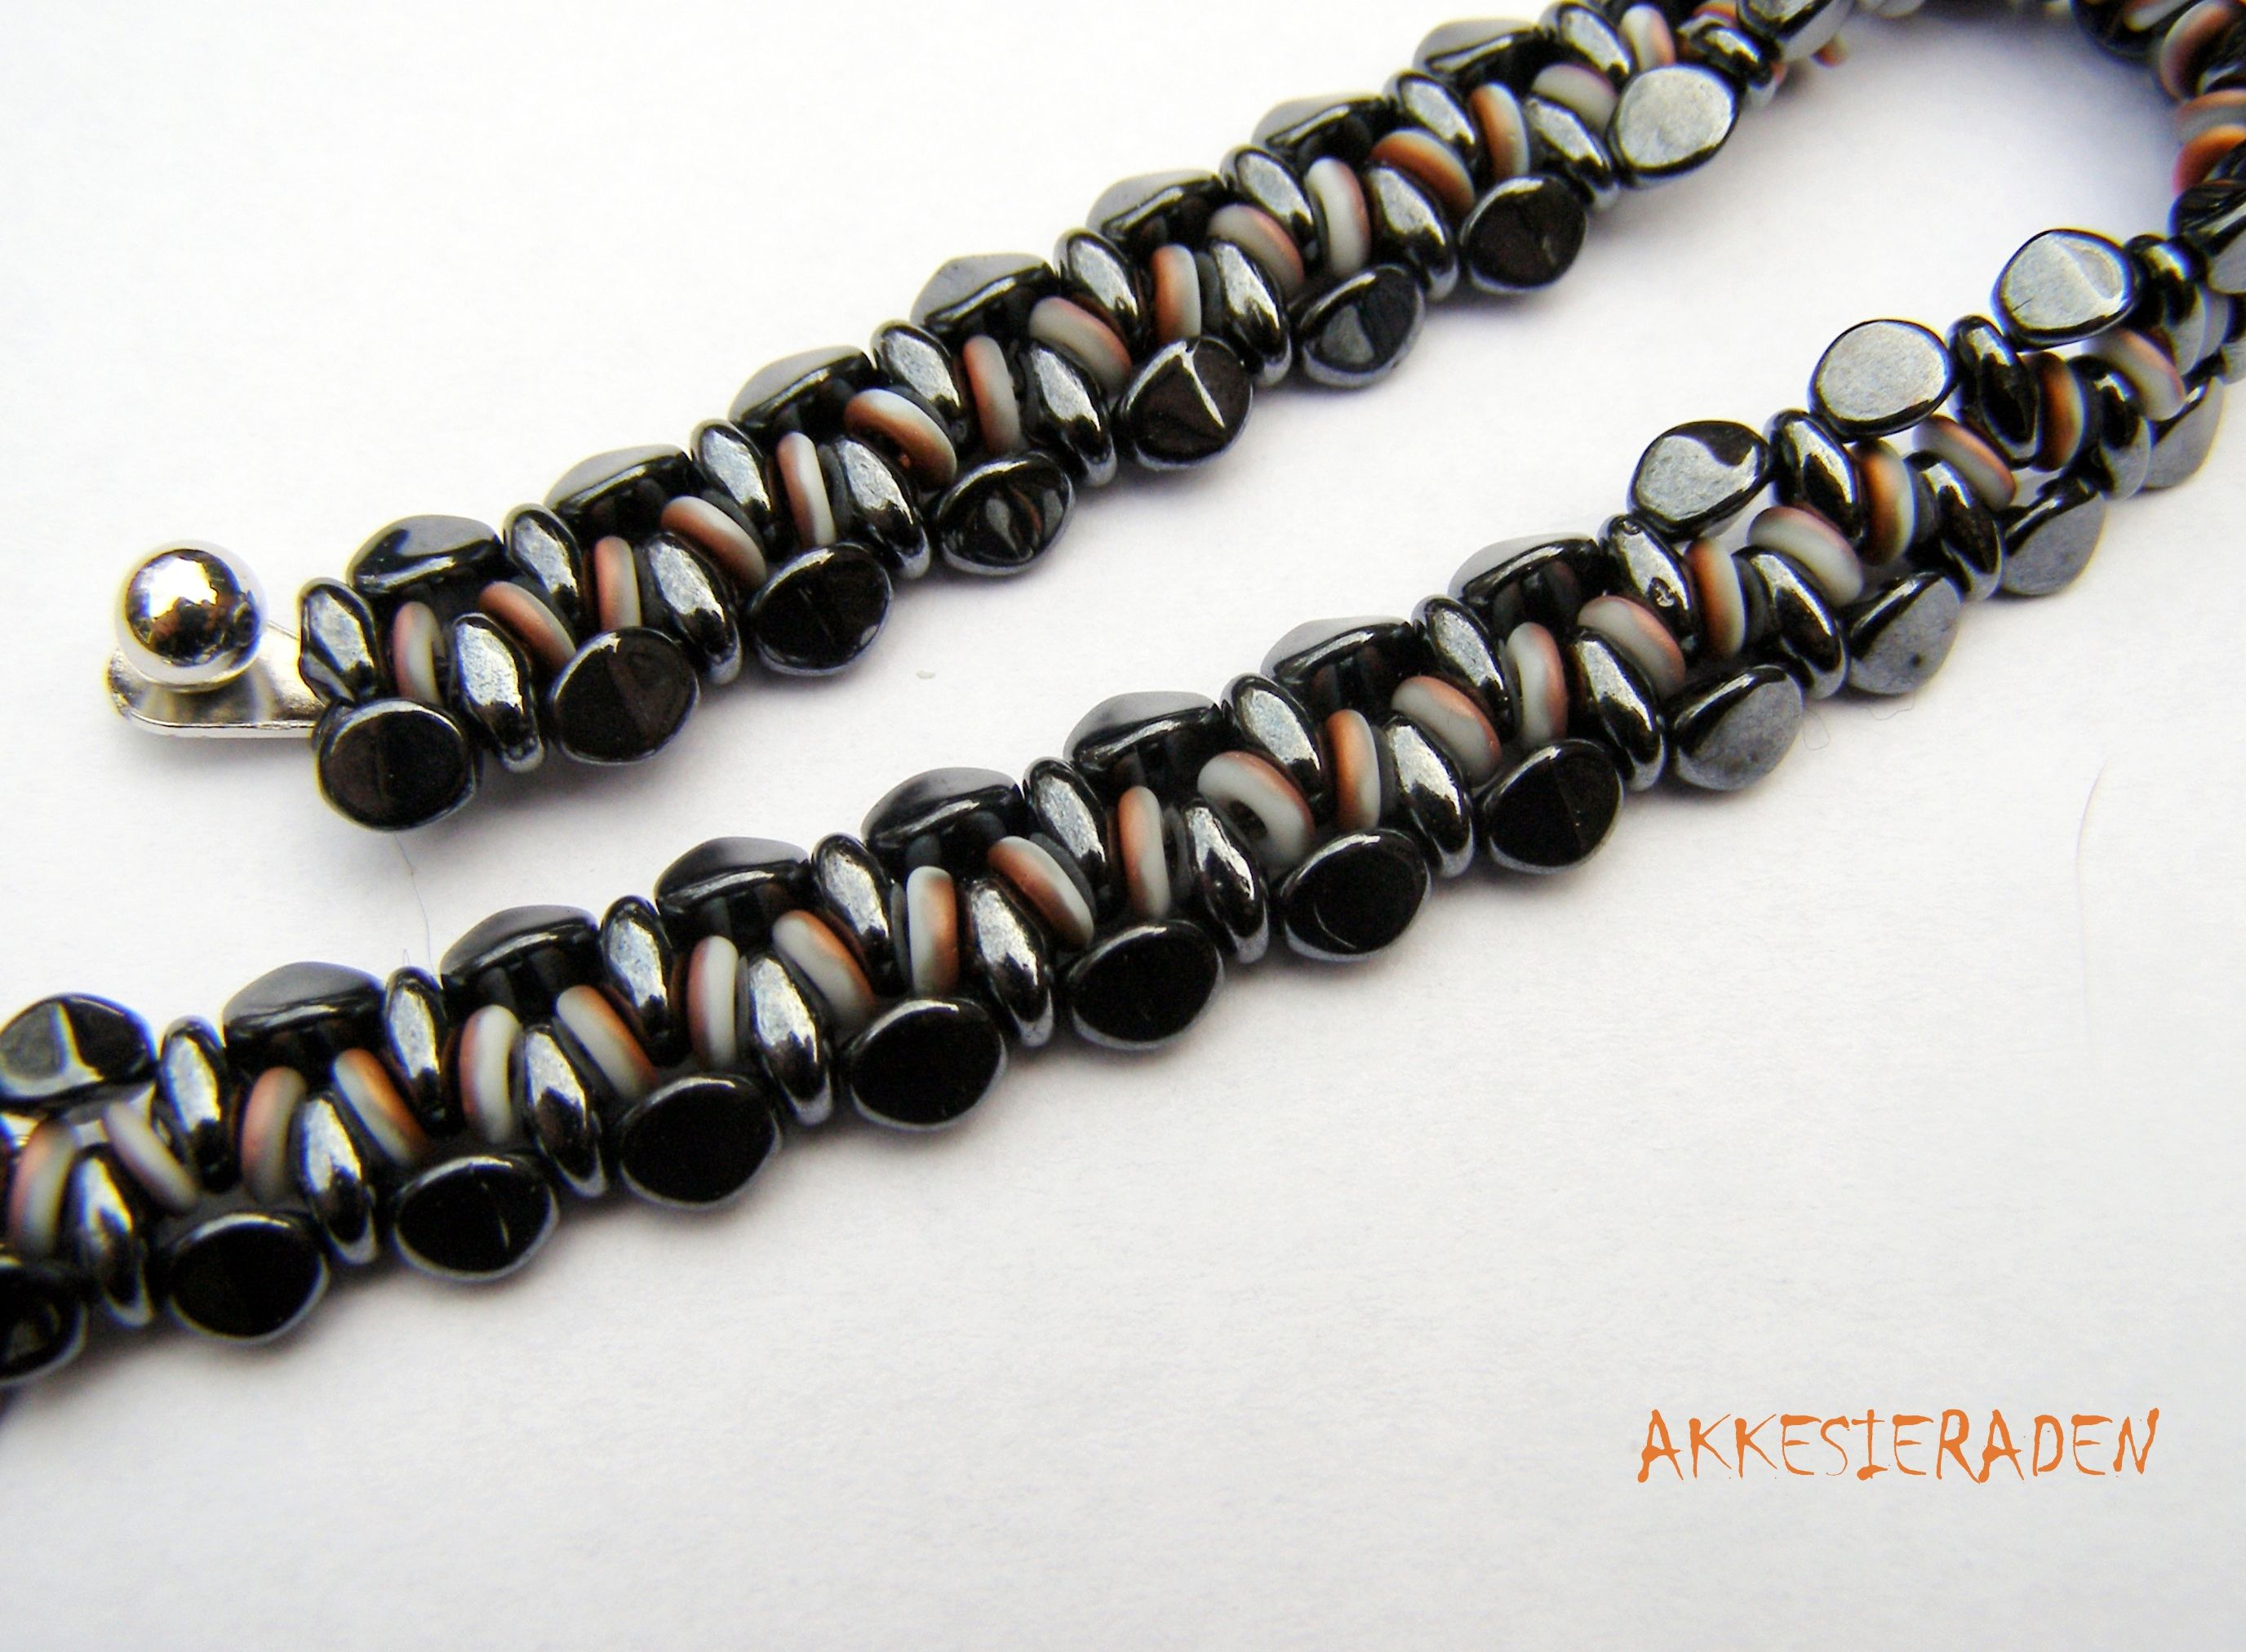 Tweetpin it related posts the new o bead free pattern ringed